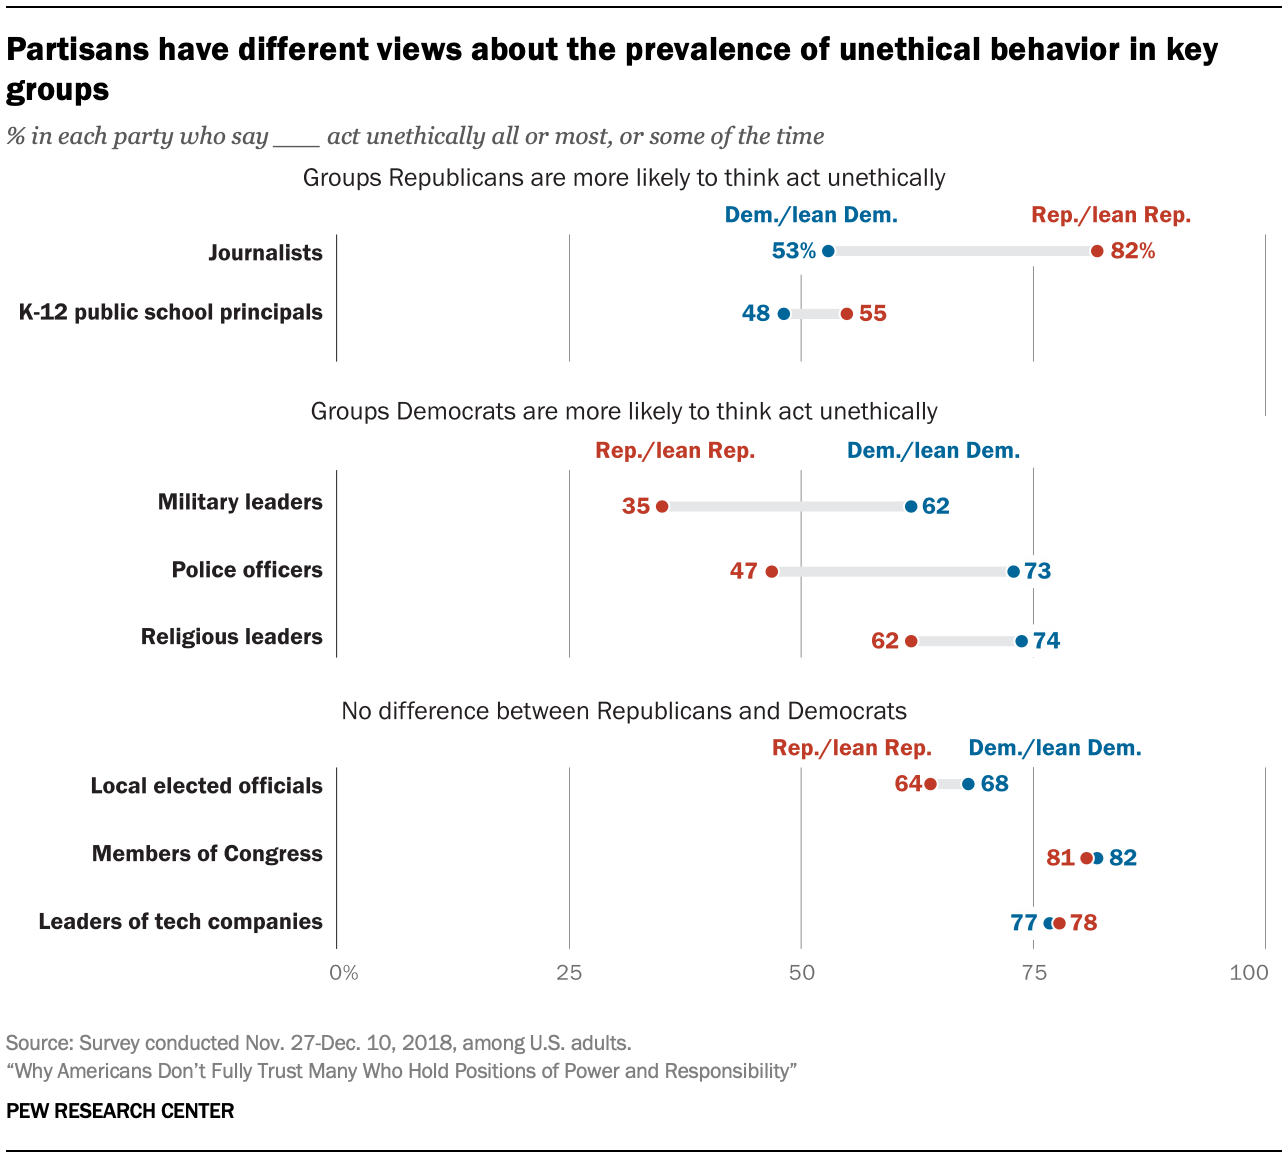 Partisans have different views about the prevalence of unethical behavior in key groups